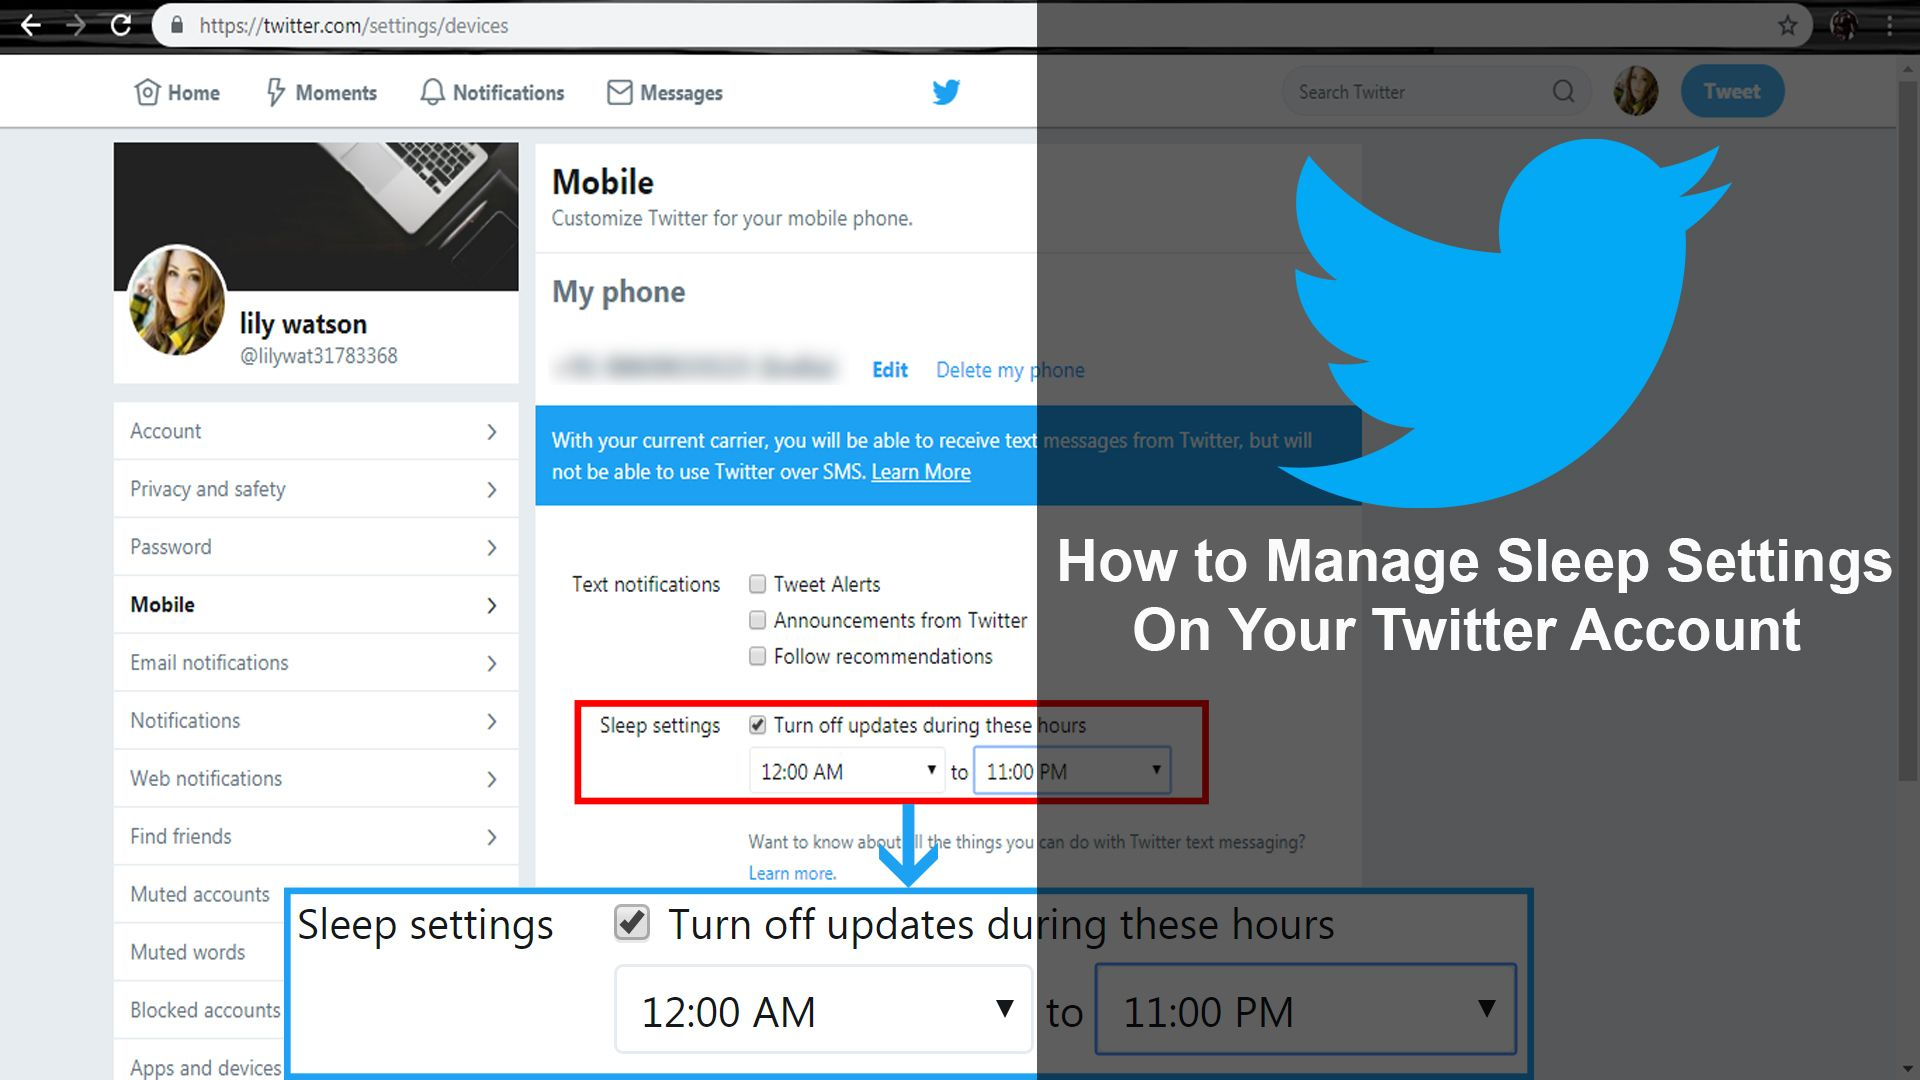 How To Manage Sleep Settings On Your Twitter Account Accounting Twitter Save Changes